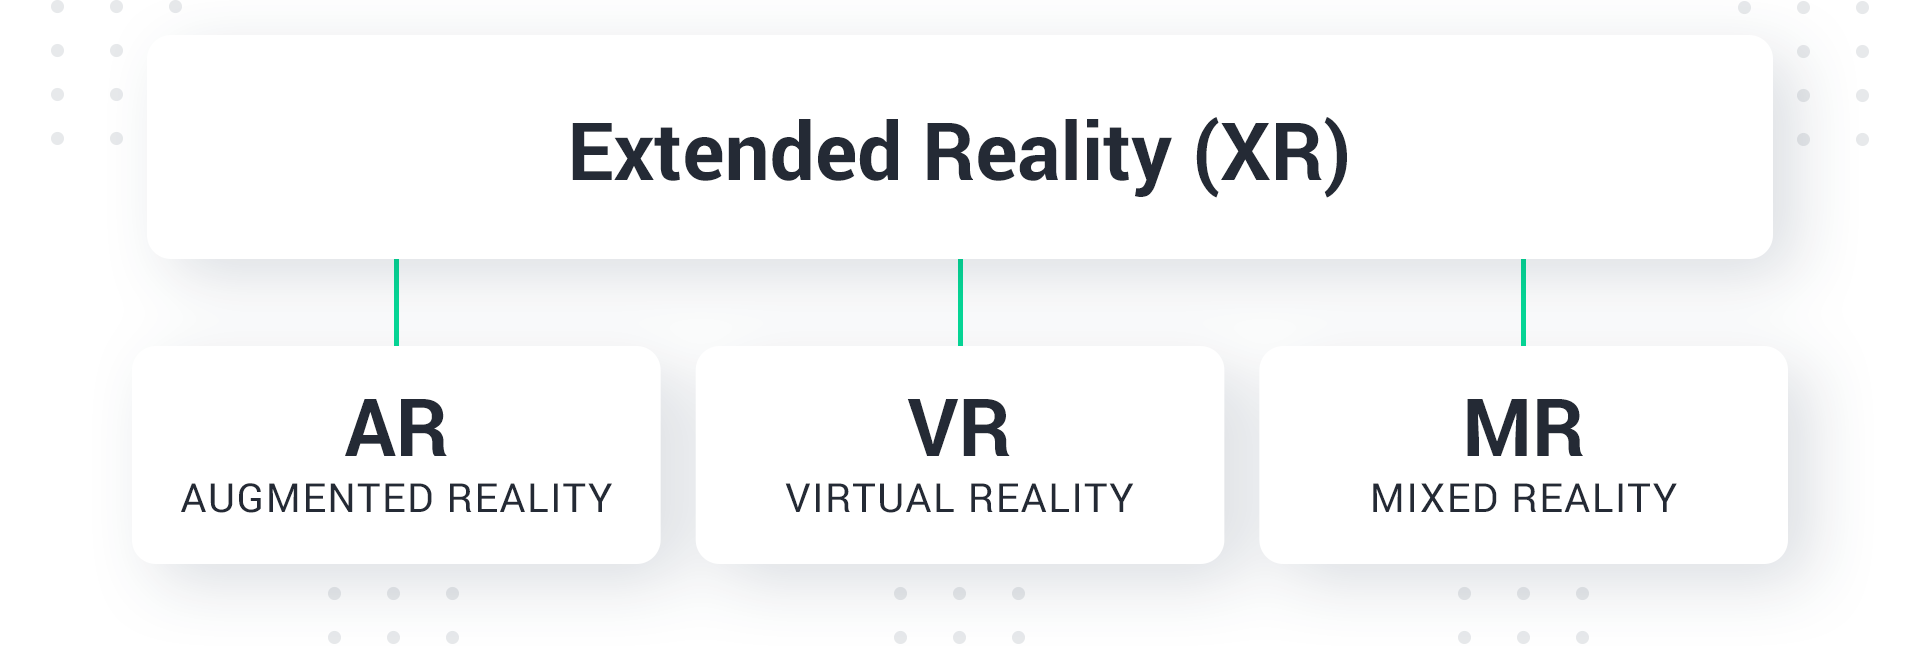 Extended Reality Explained Infographic